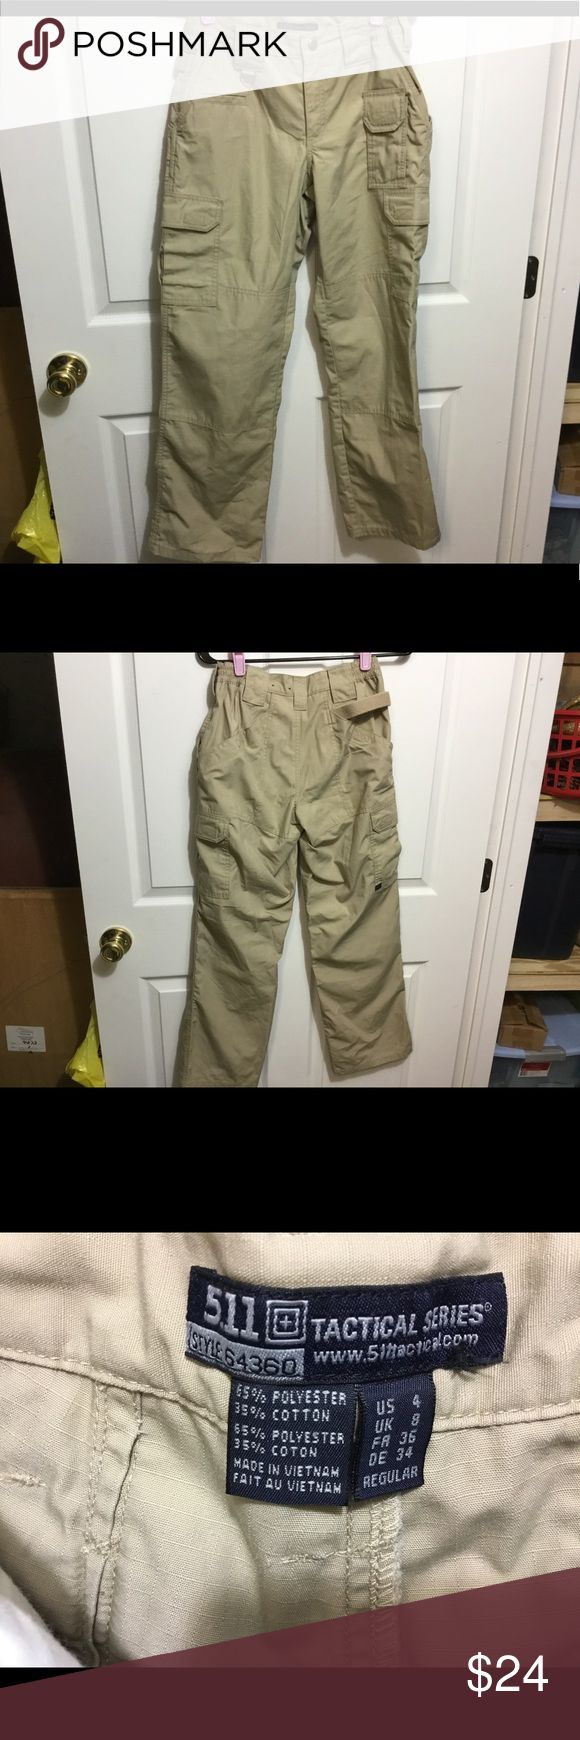 511 Tactical Pants Khaki color. Size 4 regular. Polyester/Cotton.style 64360. New/never worn 511 Tactical Series Pants